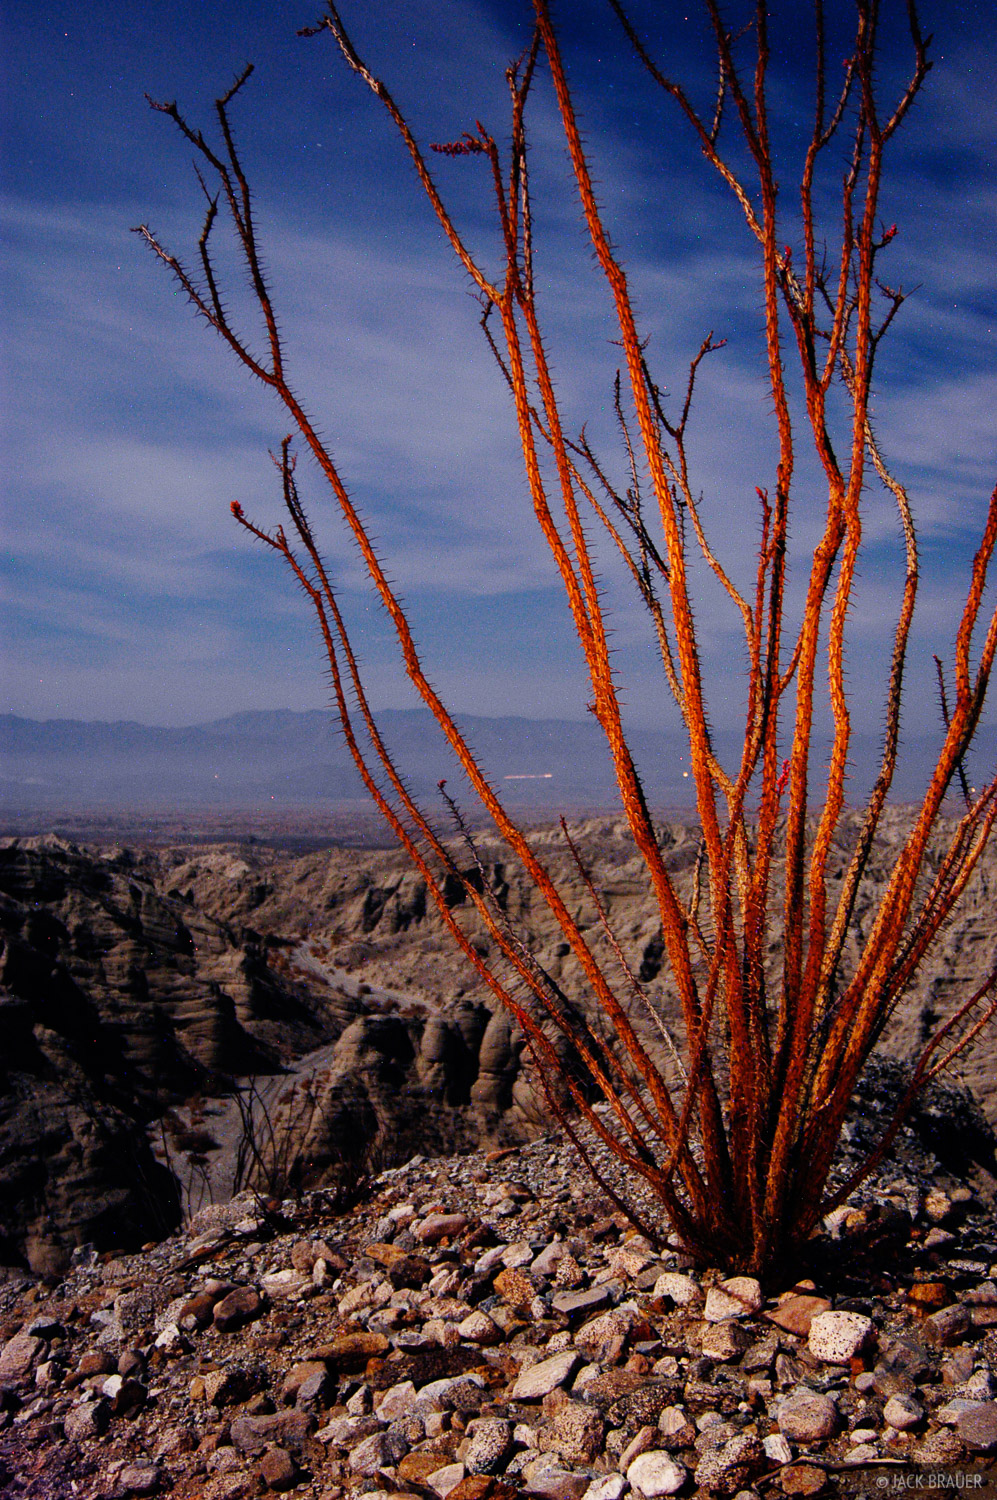 ocotillo, moonlight, Anza Borrego Desert, California, photo